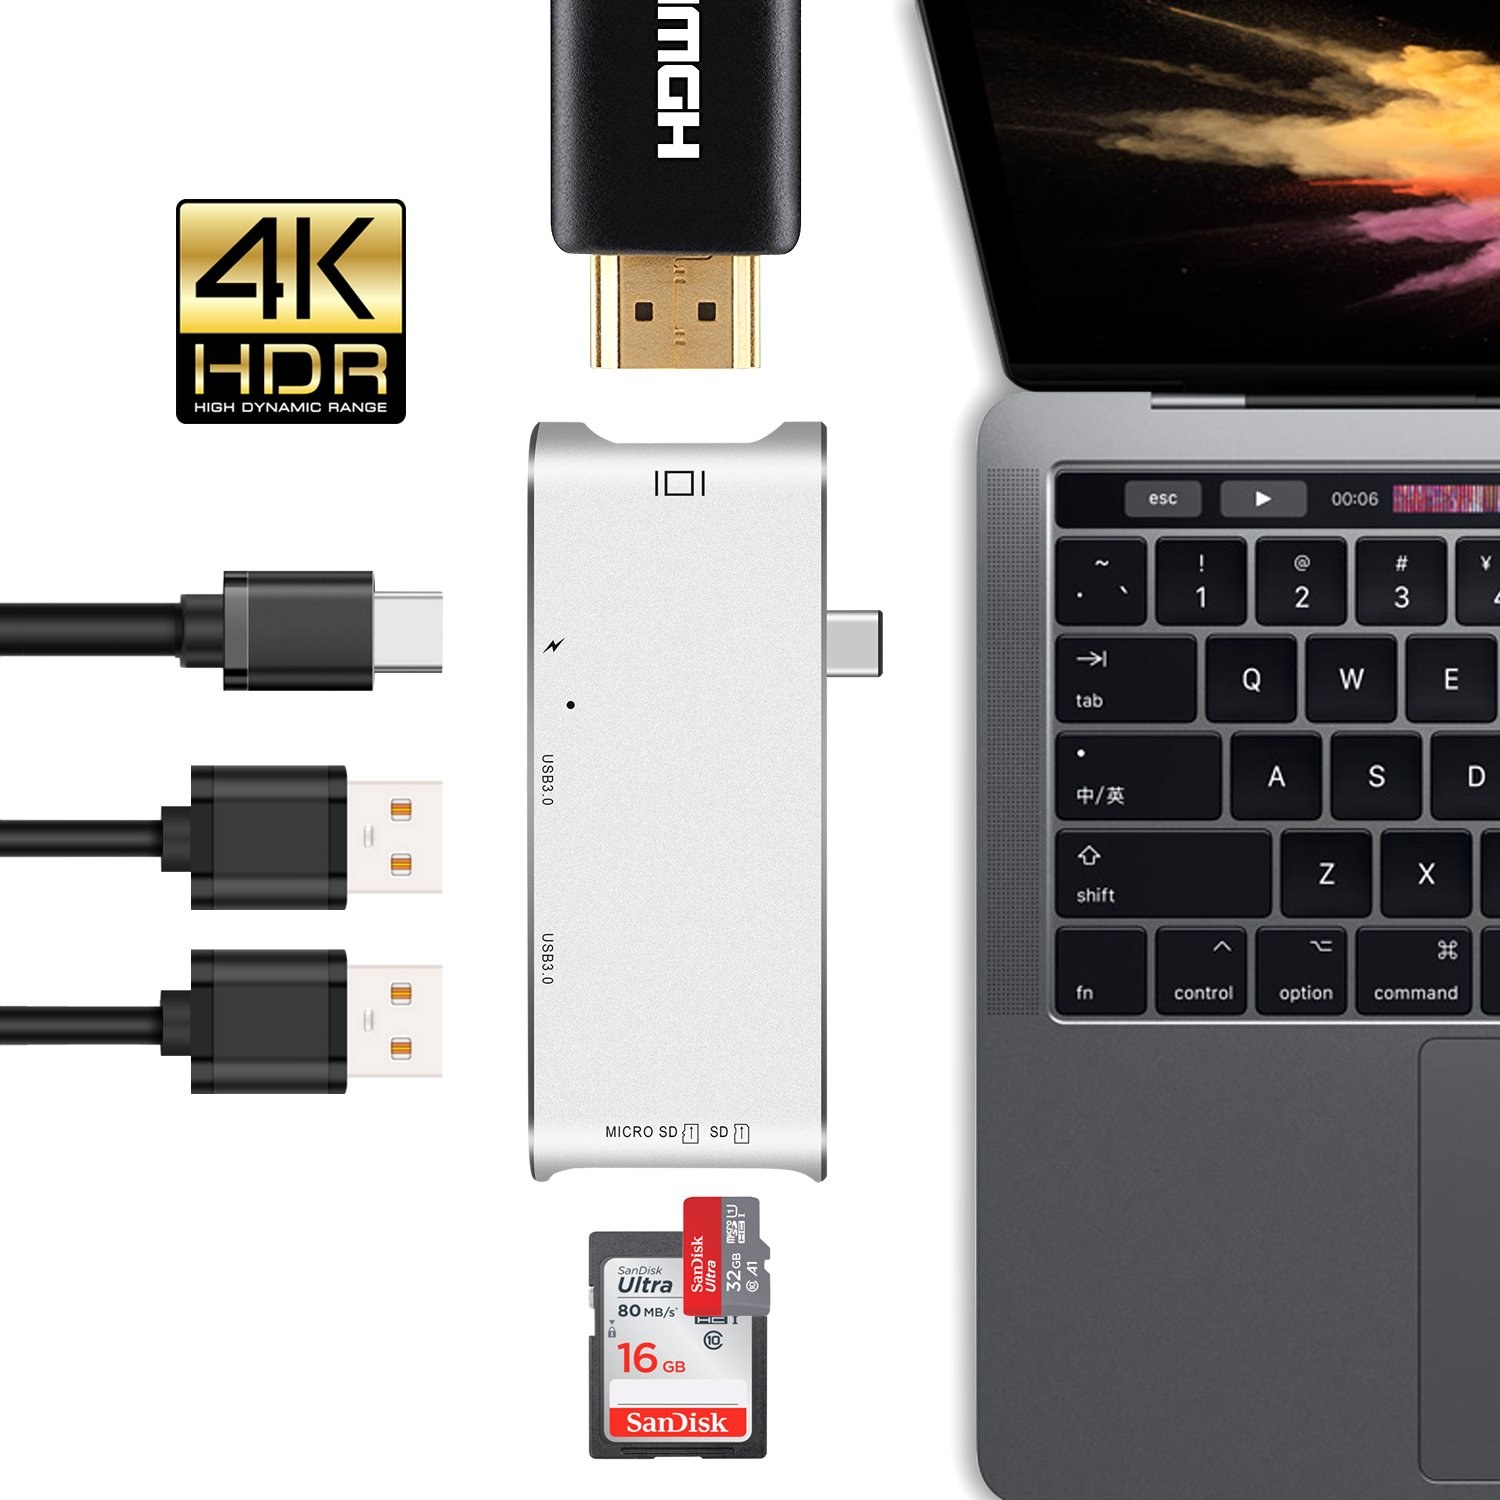 USB Type-C Hub, LUCKYDIY USB-C Adapter with HDMI 4K+2-Port USB 3.0+Power Delivery+Card Reader for MacBook Pro 2016/2017/Google Chromebook/More Type-C Devices by LUCKYDIY (Image #1)